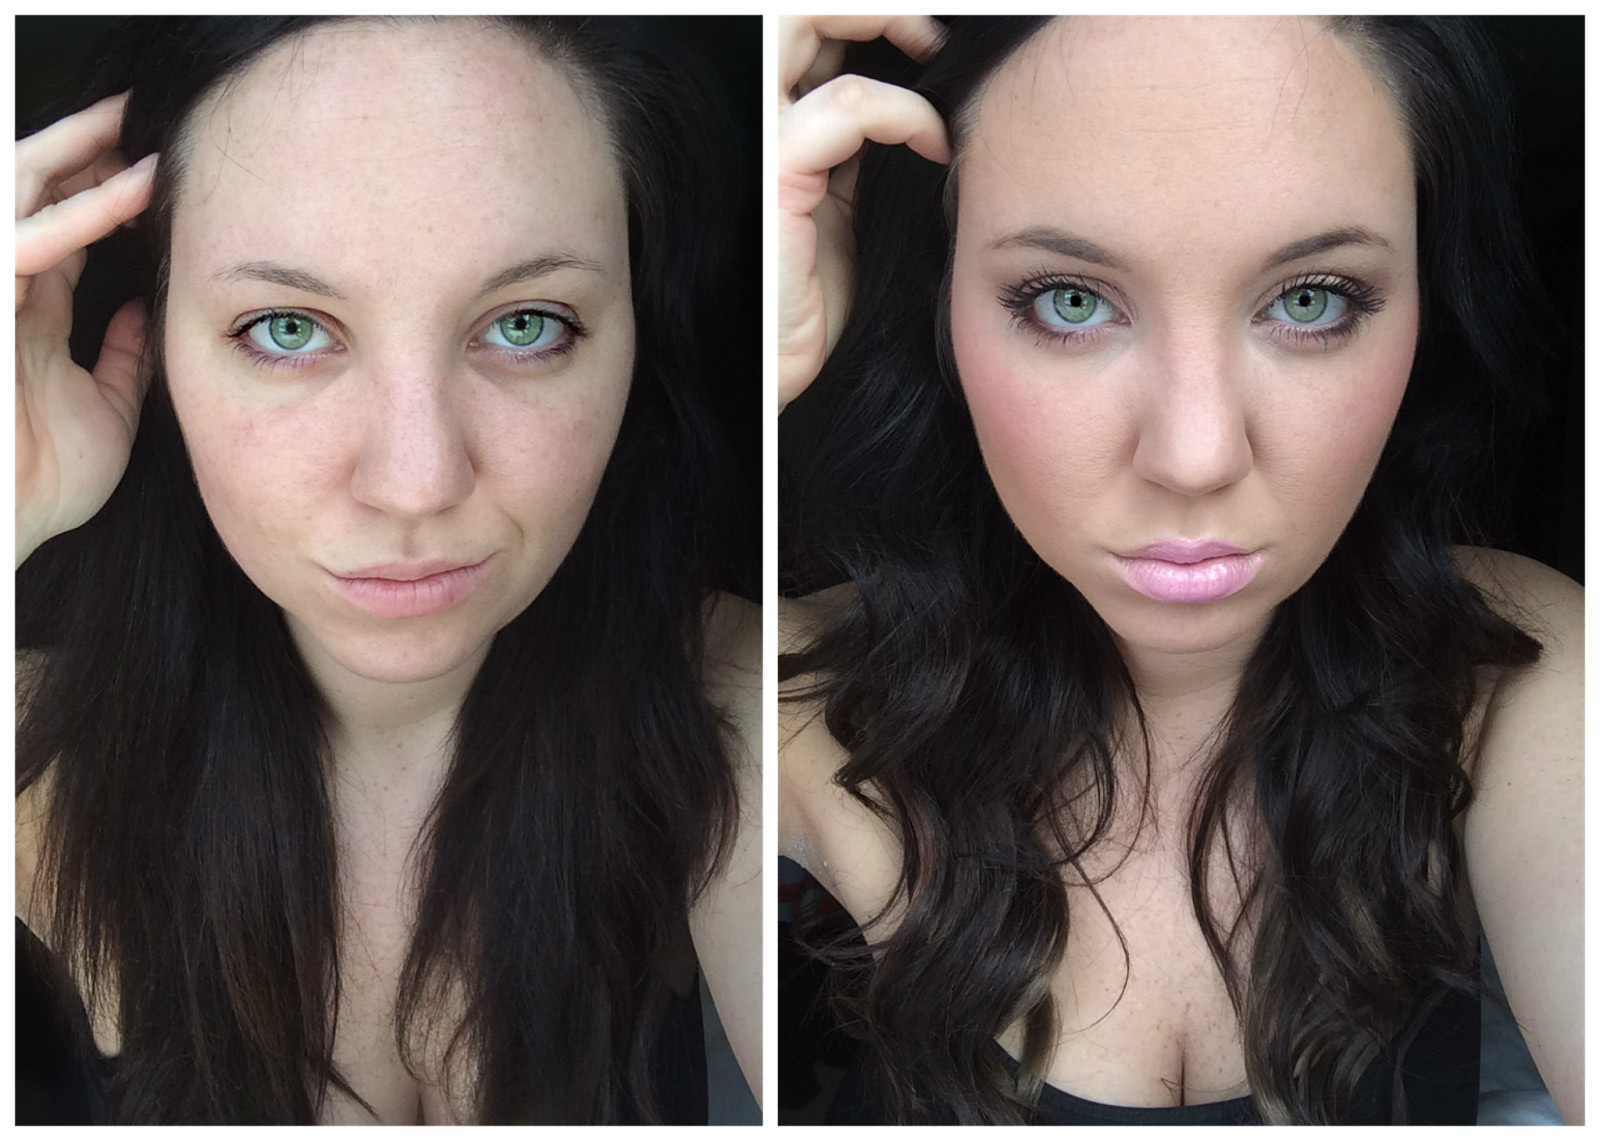 30 Before Amp After Photos That Shows The Power Of Makeup